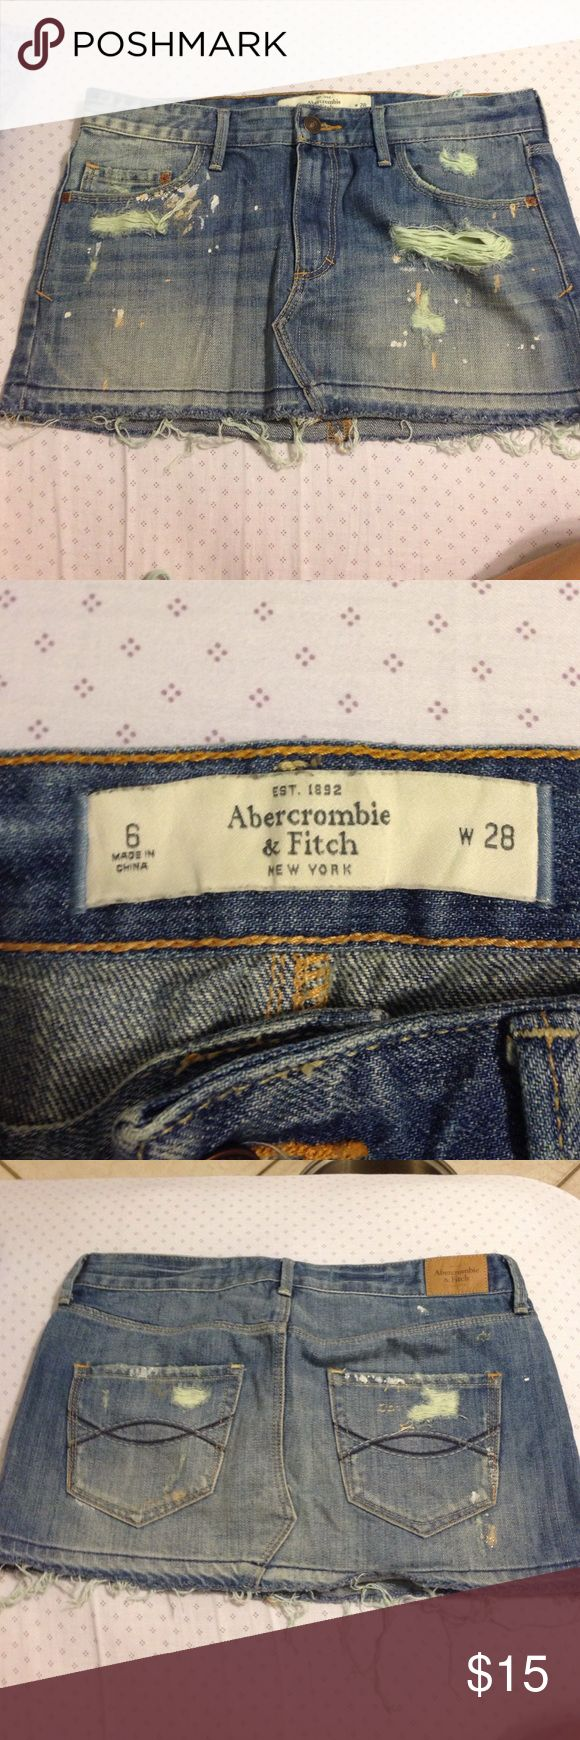 """Abercrombie and Fitch Jean mini skirt size 6 / w28 Abercrombie and Fitch mini skillet torn look with pockets and zipper. Greenish tint to the """"torn"""" parts. Great condition size 6 or women's 28 Abercrombie & Fitch Skirts Mini"""